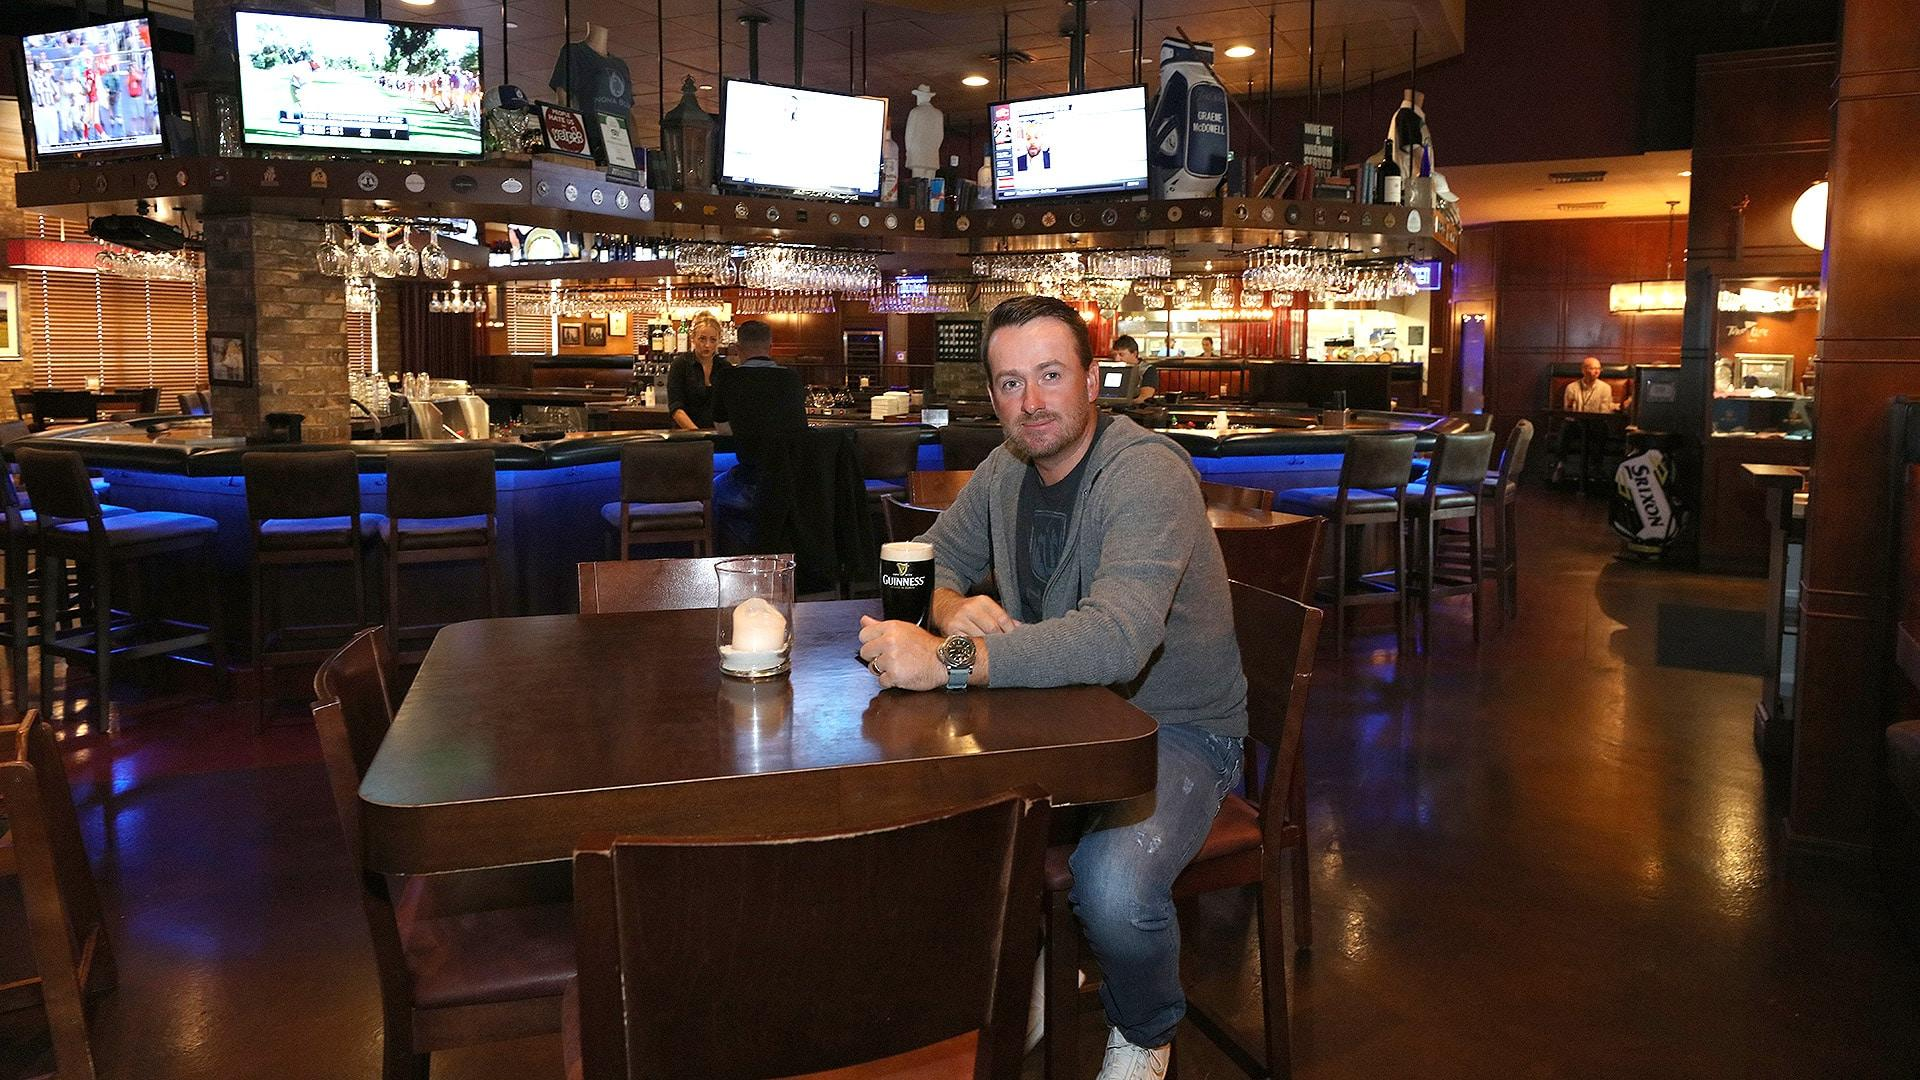 Graeme McDowell feeling business impact of pandemic with Nona Blue Taverns closed